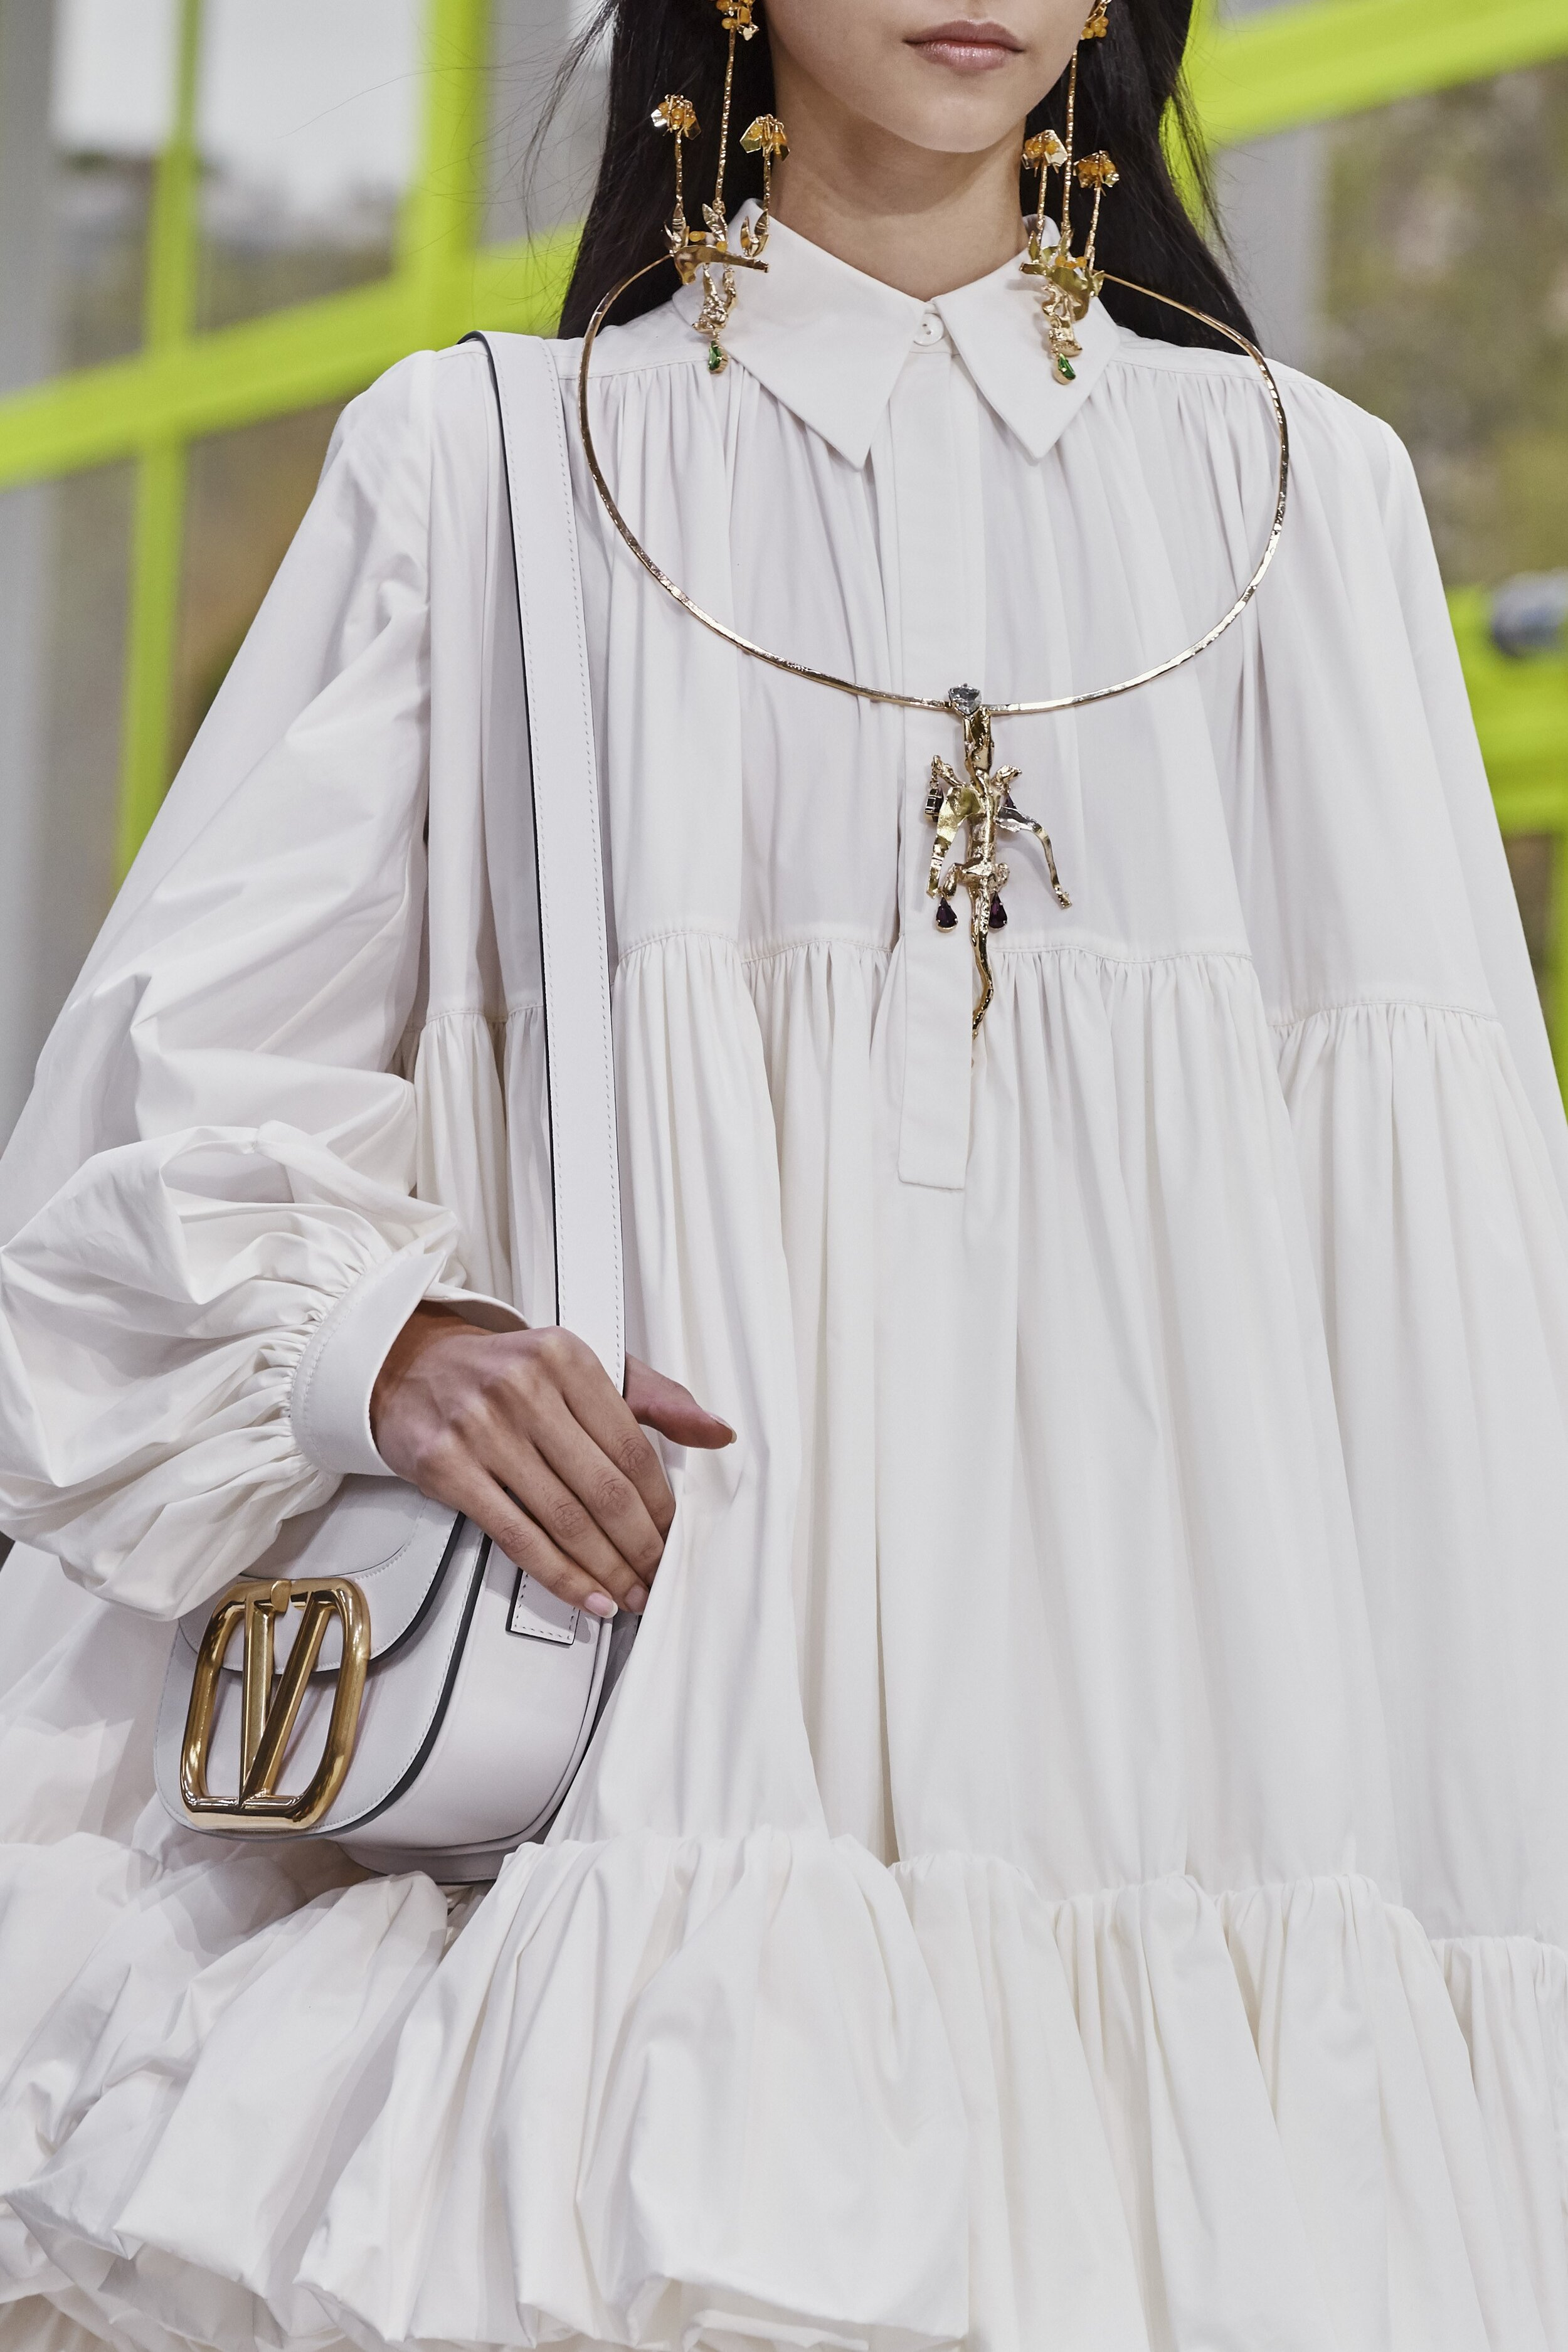 Details at Valentino SS20 by Pierpaolo Piccioli. (Photo: theimpression.com)